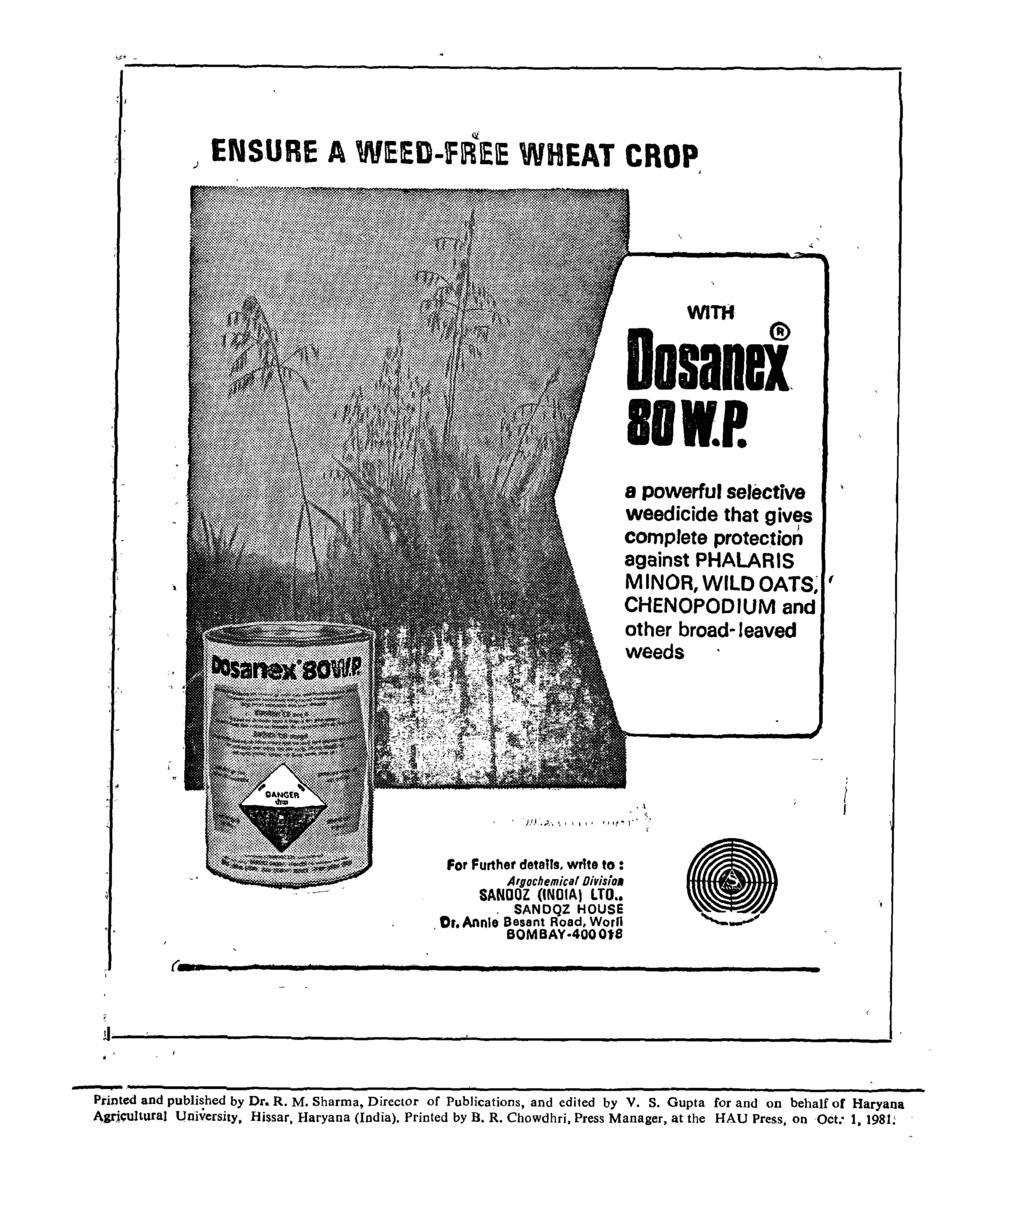 :, Ii[ ) ENSURE A WEED-fREIE WHEAT CROP WITH Do sand BOWP.